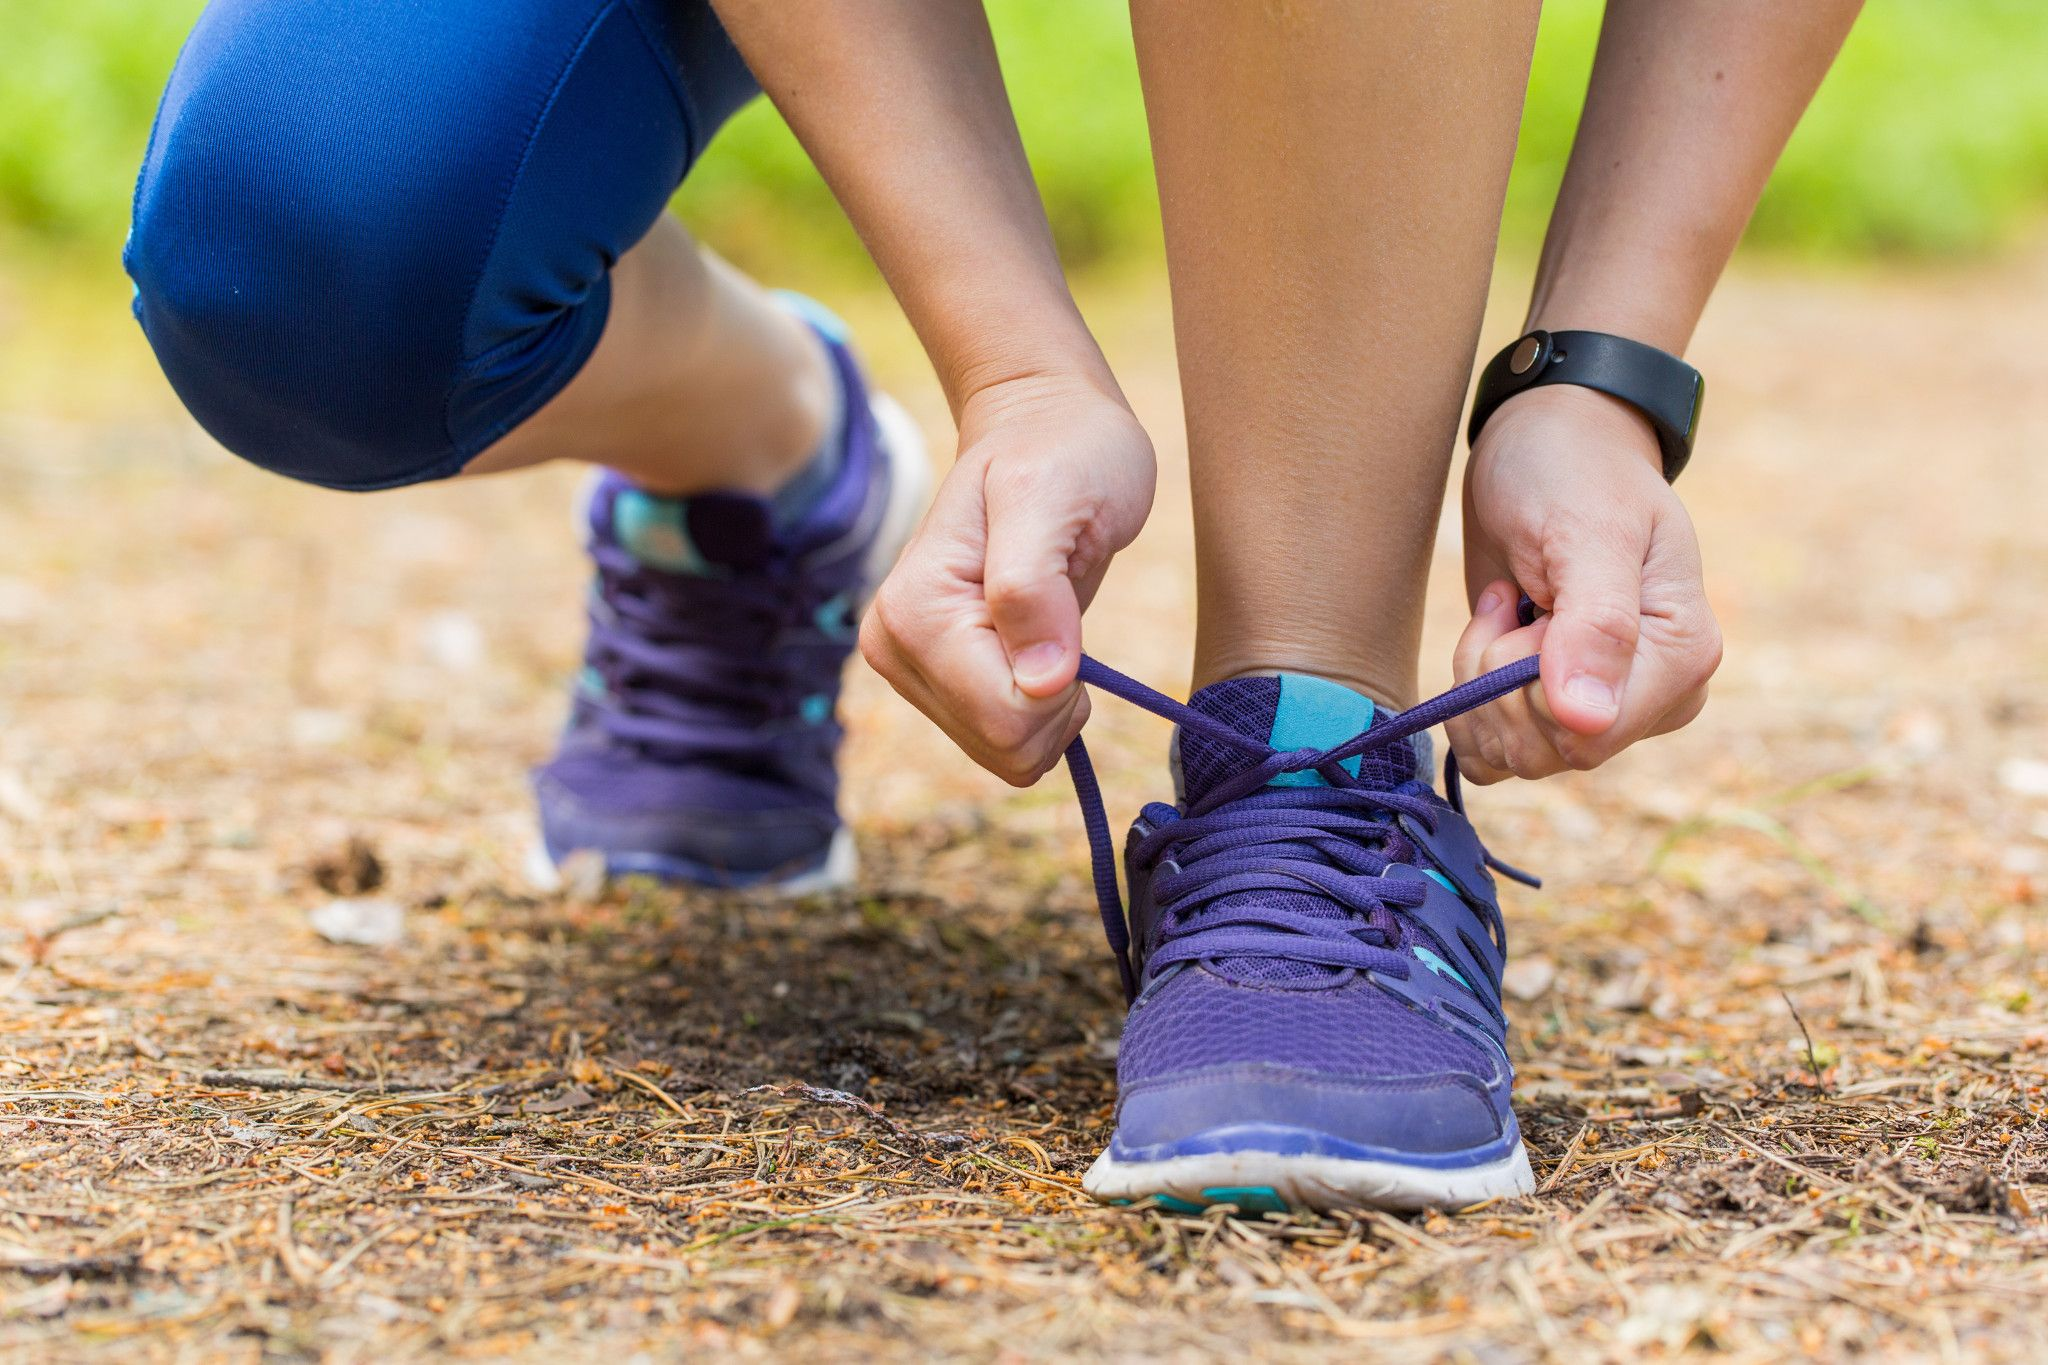 tying athletic shoes